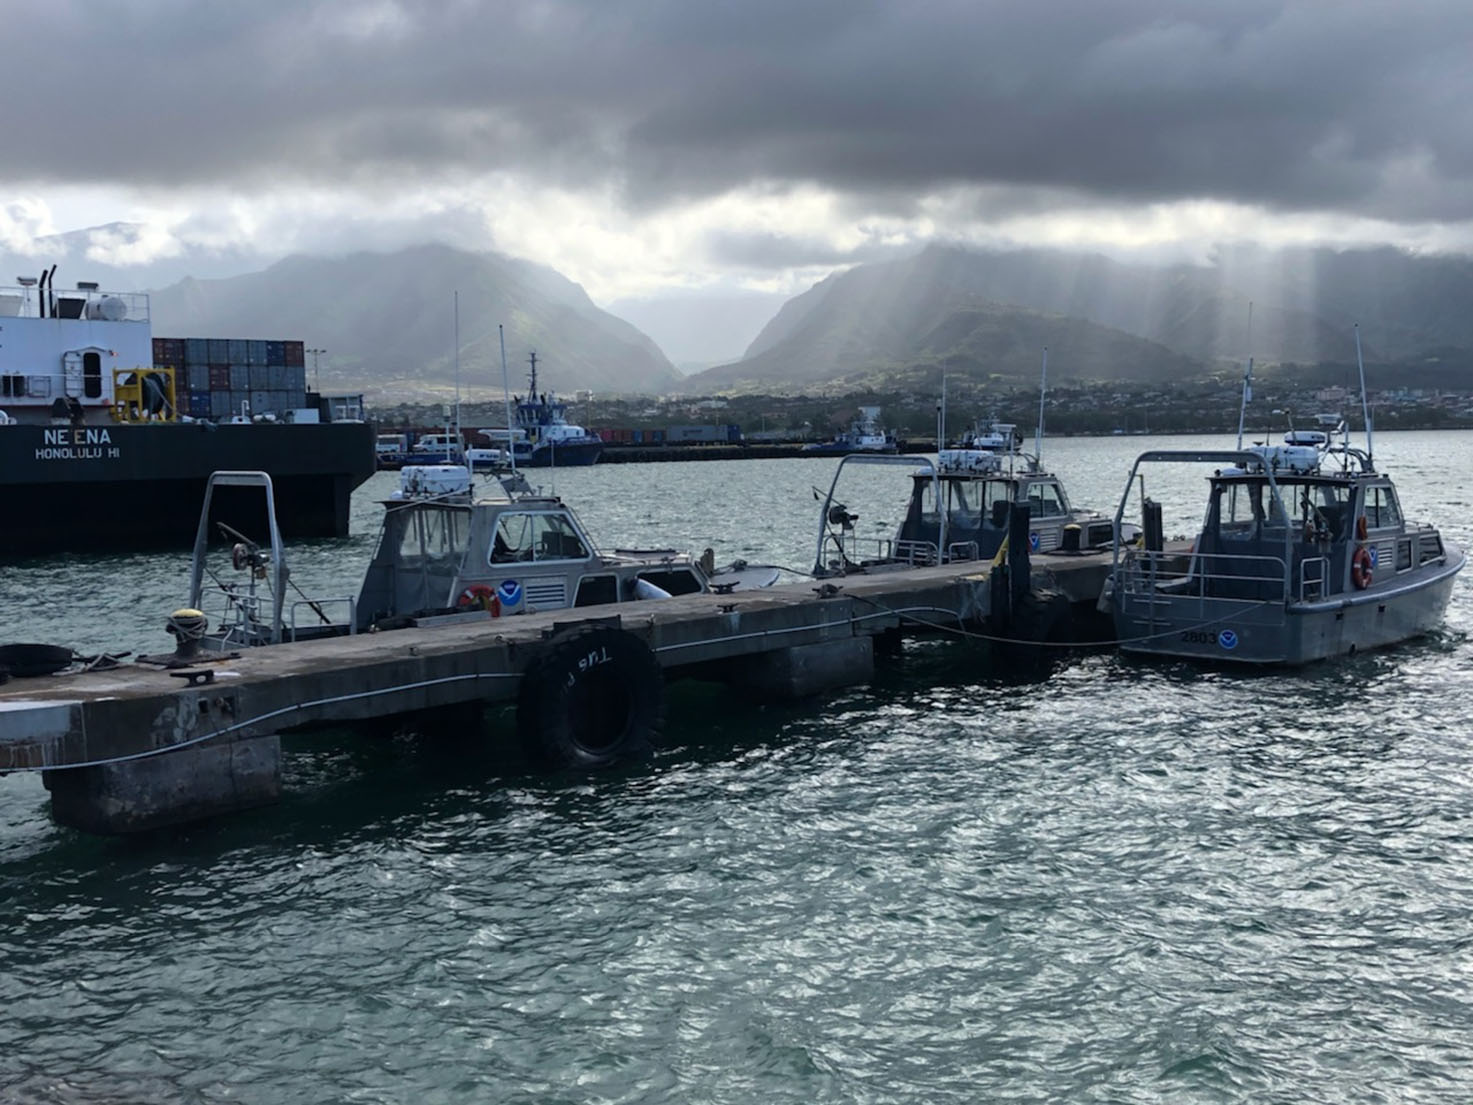 Three of Rainier's hydrographic survey launches moored in Kahului Harbor, Maui.